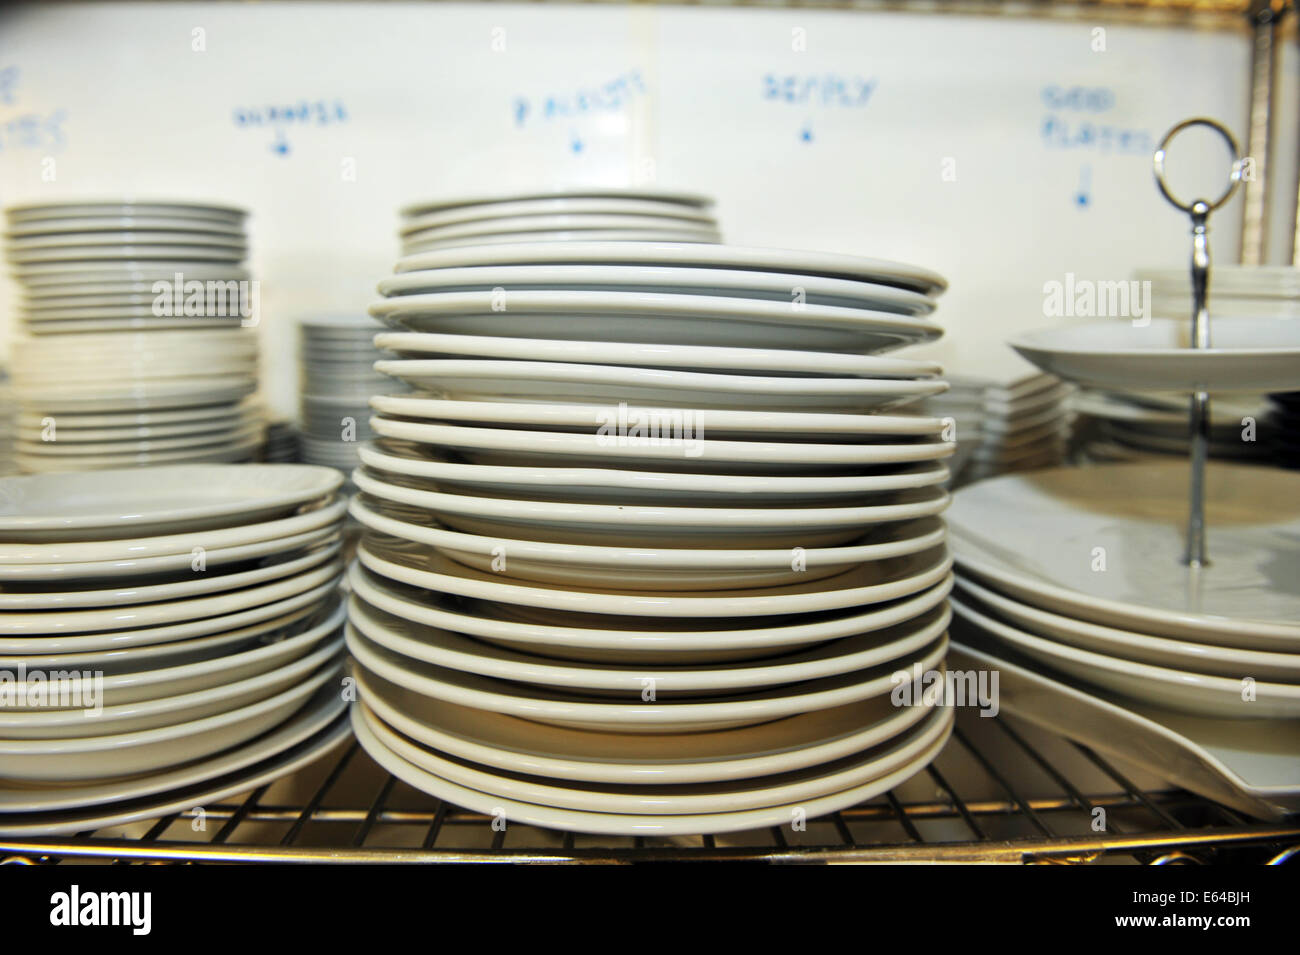 Stack of plates, Catering College, Bradford - Stock Image